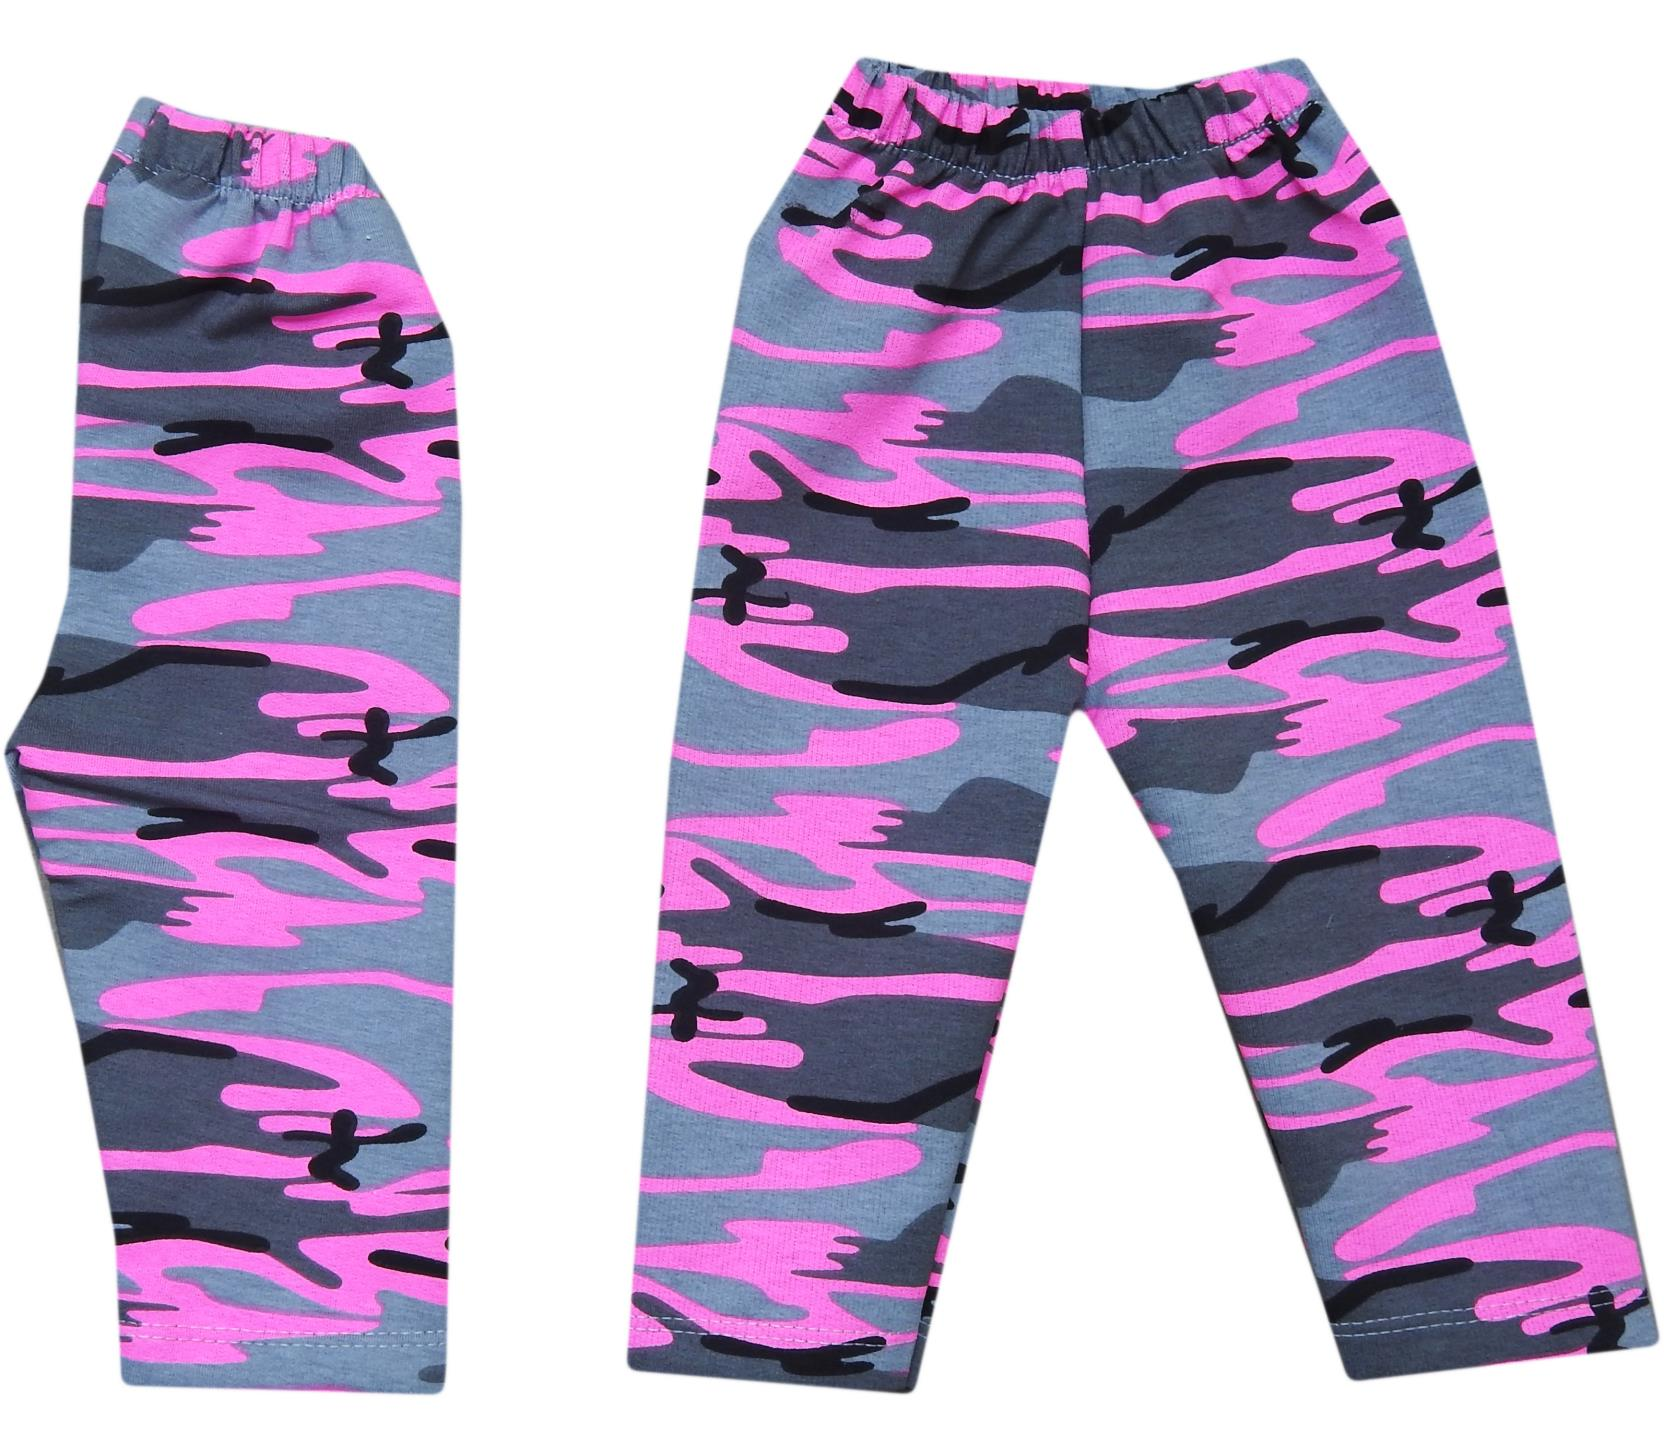 wholesale baby camouflage leggings for girls for 1-2-3 age